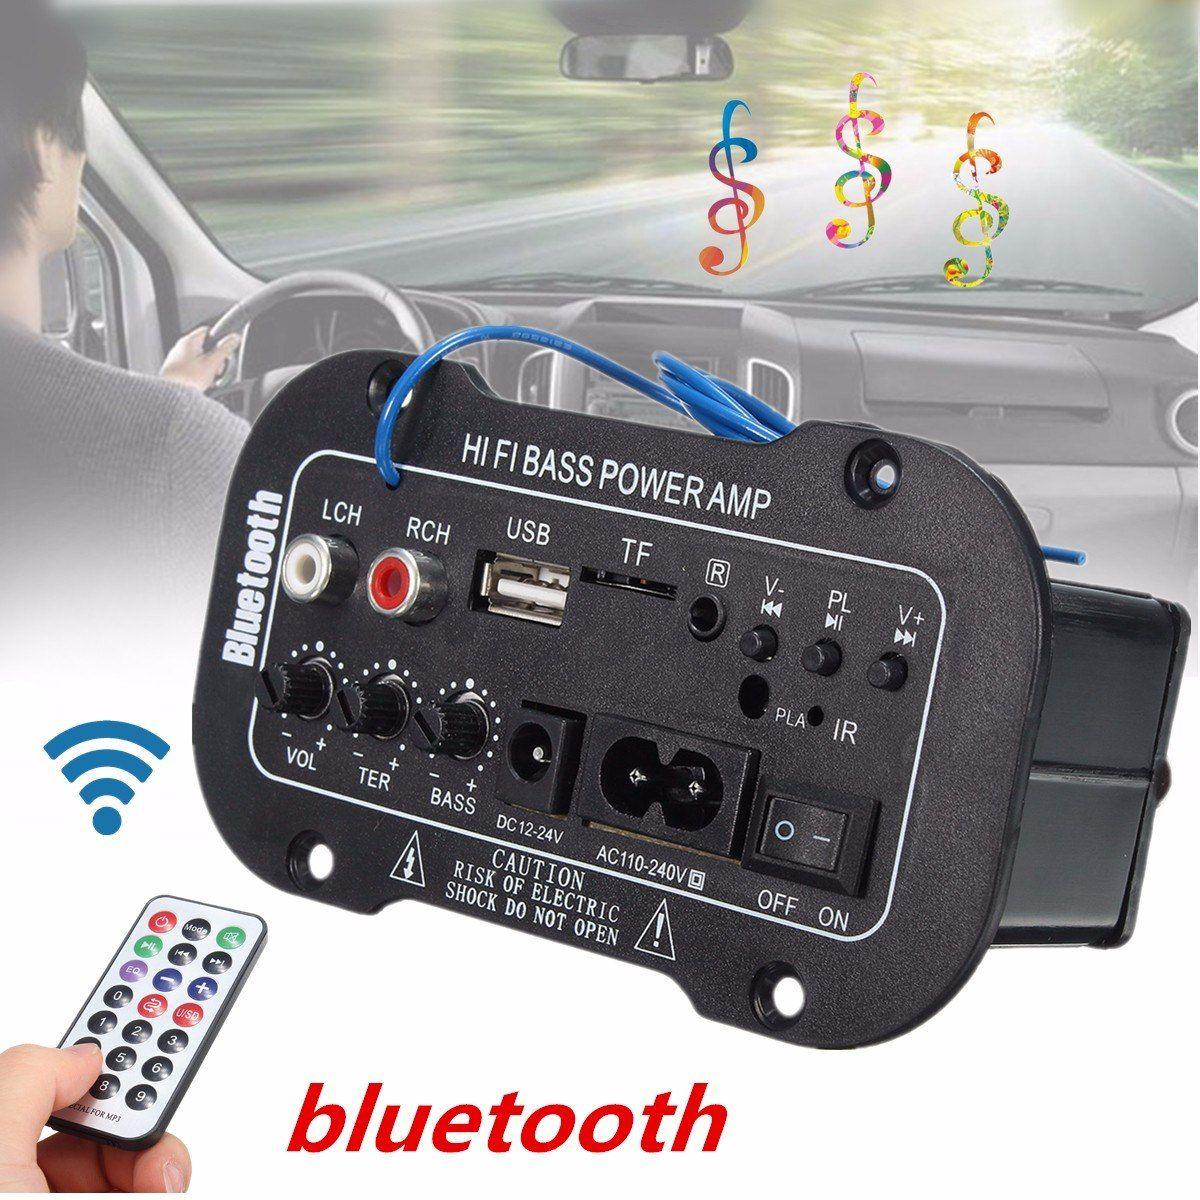 New Universal Bluetooth Amplifier Board Speaker Usb Fm Radio Tf Player Subwoofer Diy Amplifiers For Motorcycle Car Home T Car Subwoofer Car Audio Diy Usb Radio